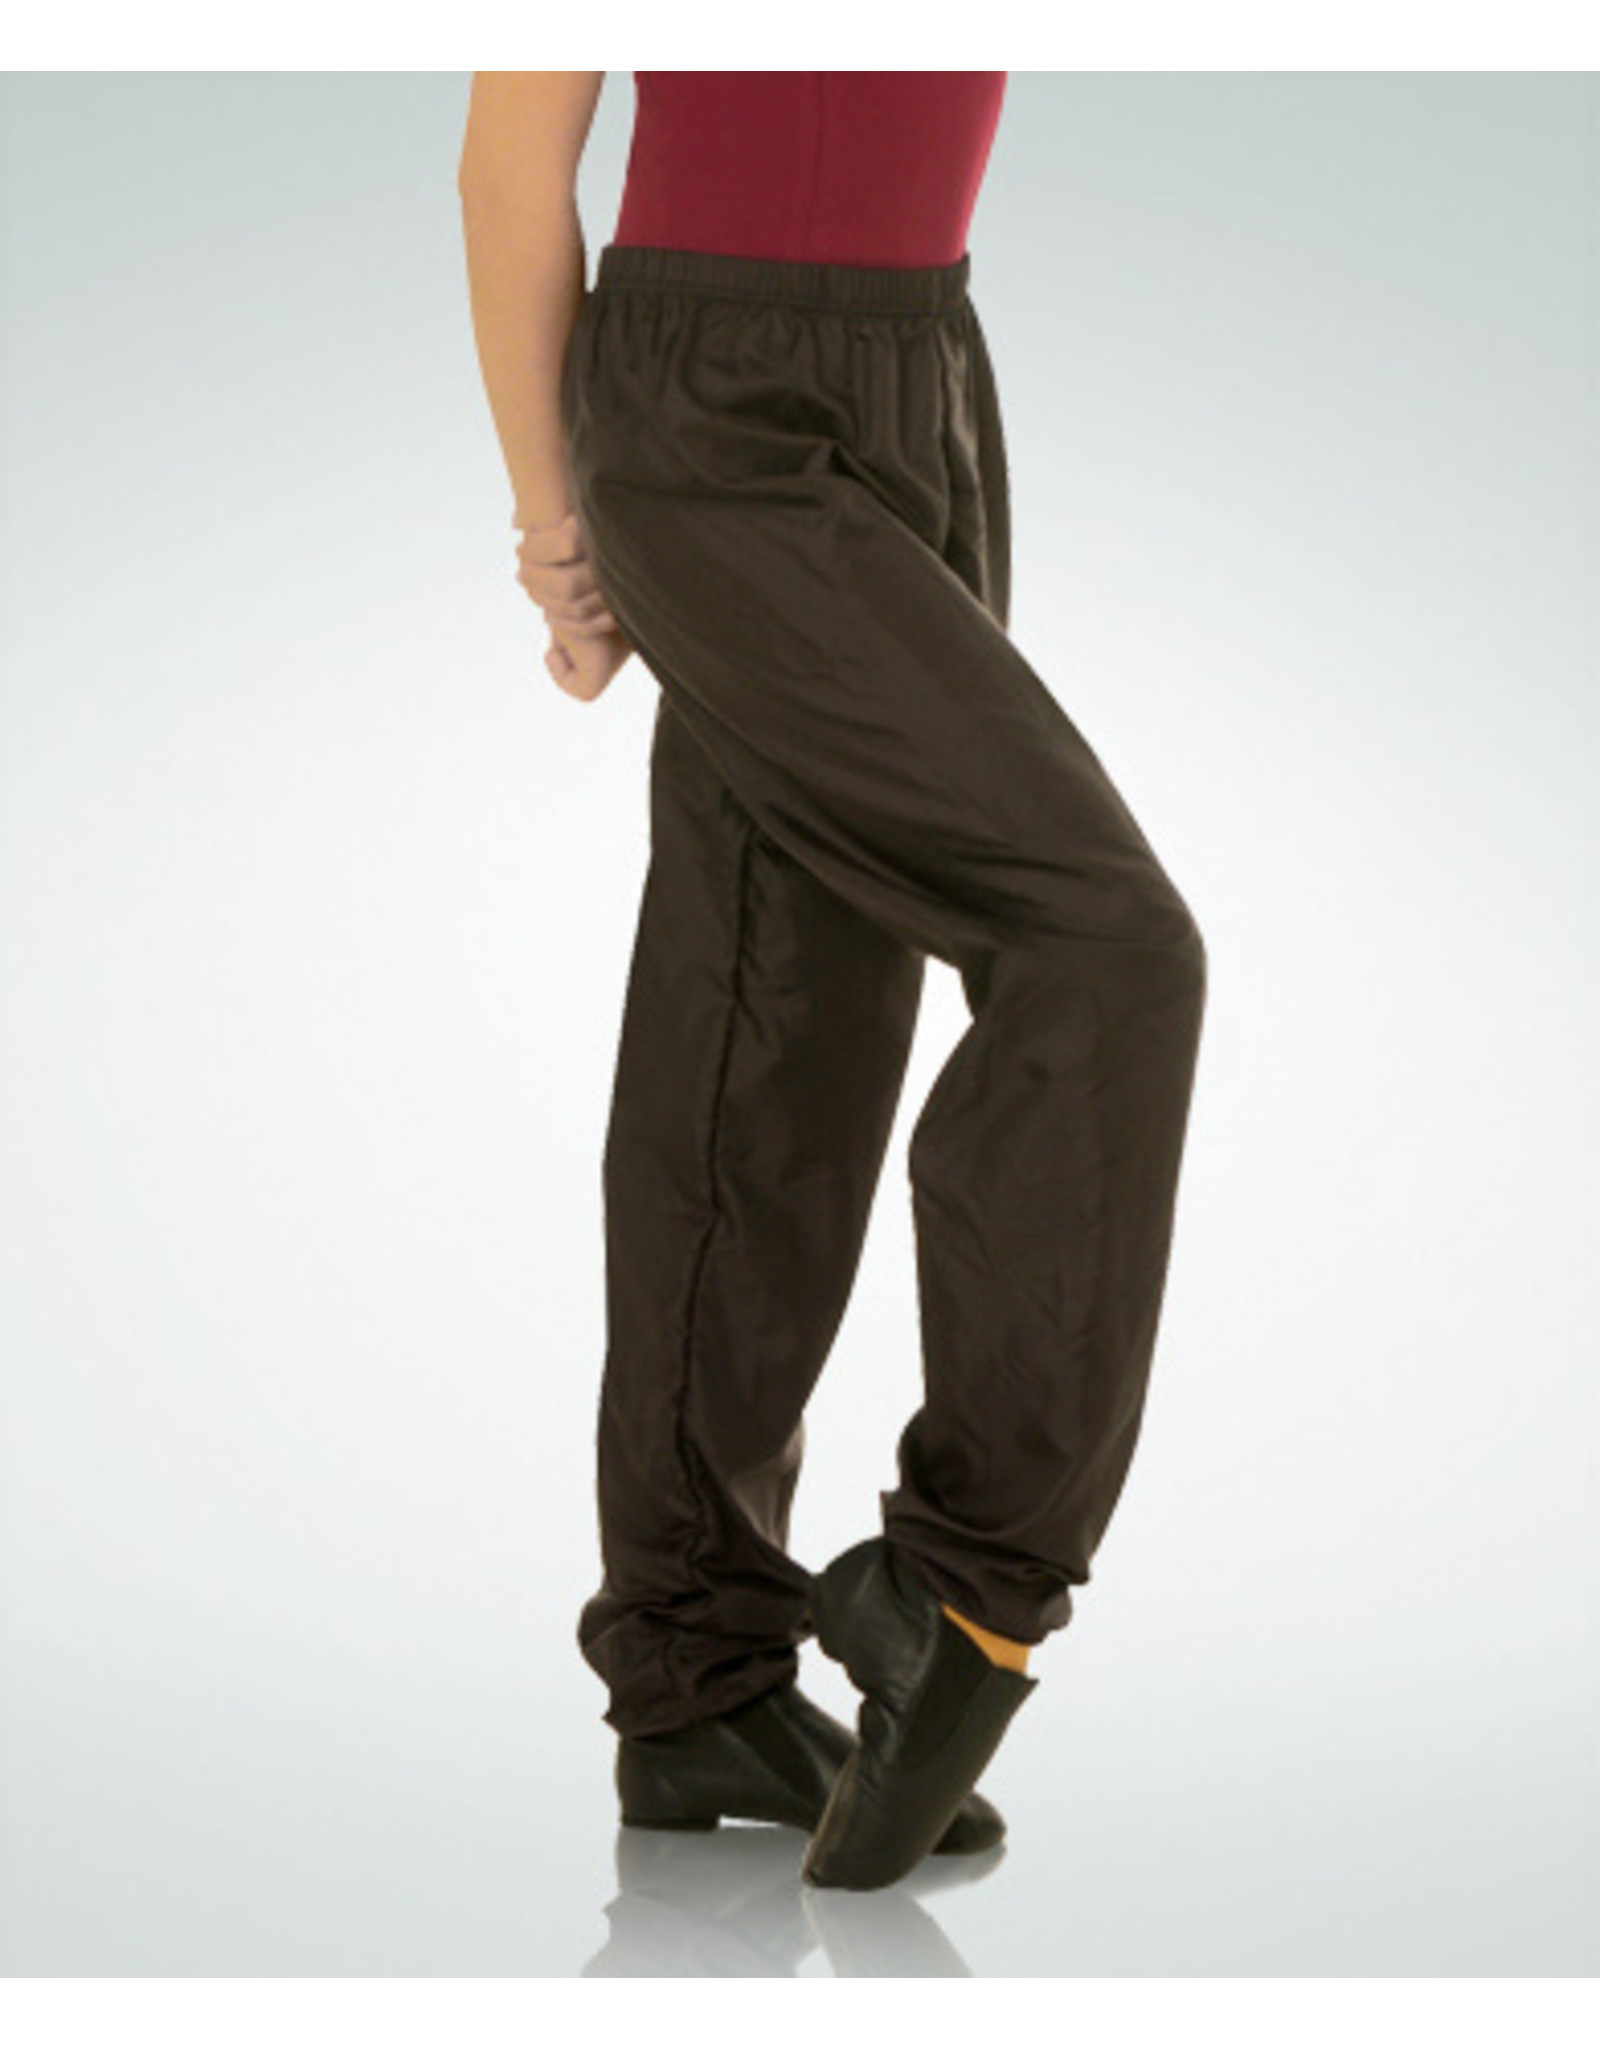 BODYWRAPPERS RIPSTOP PANT